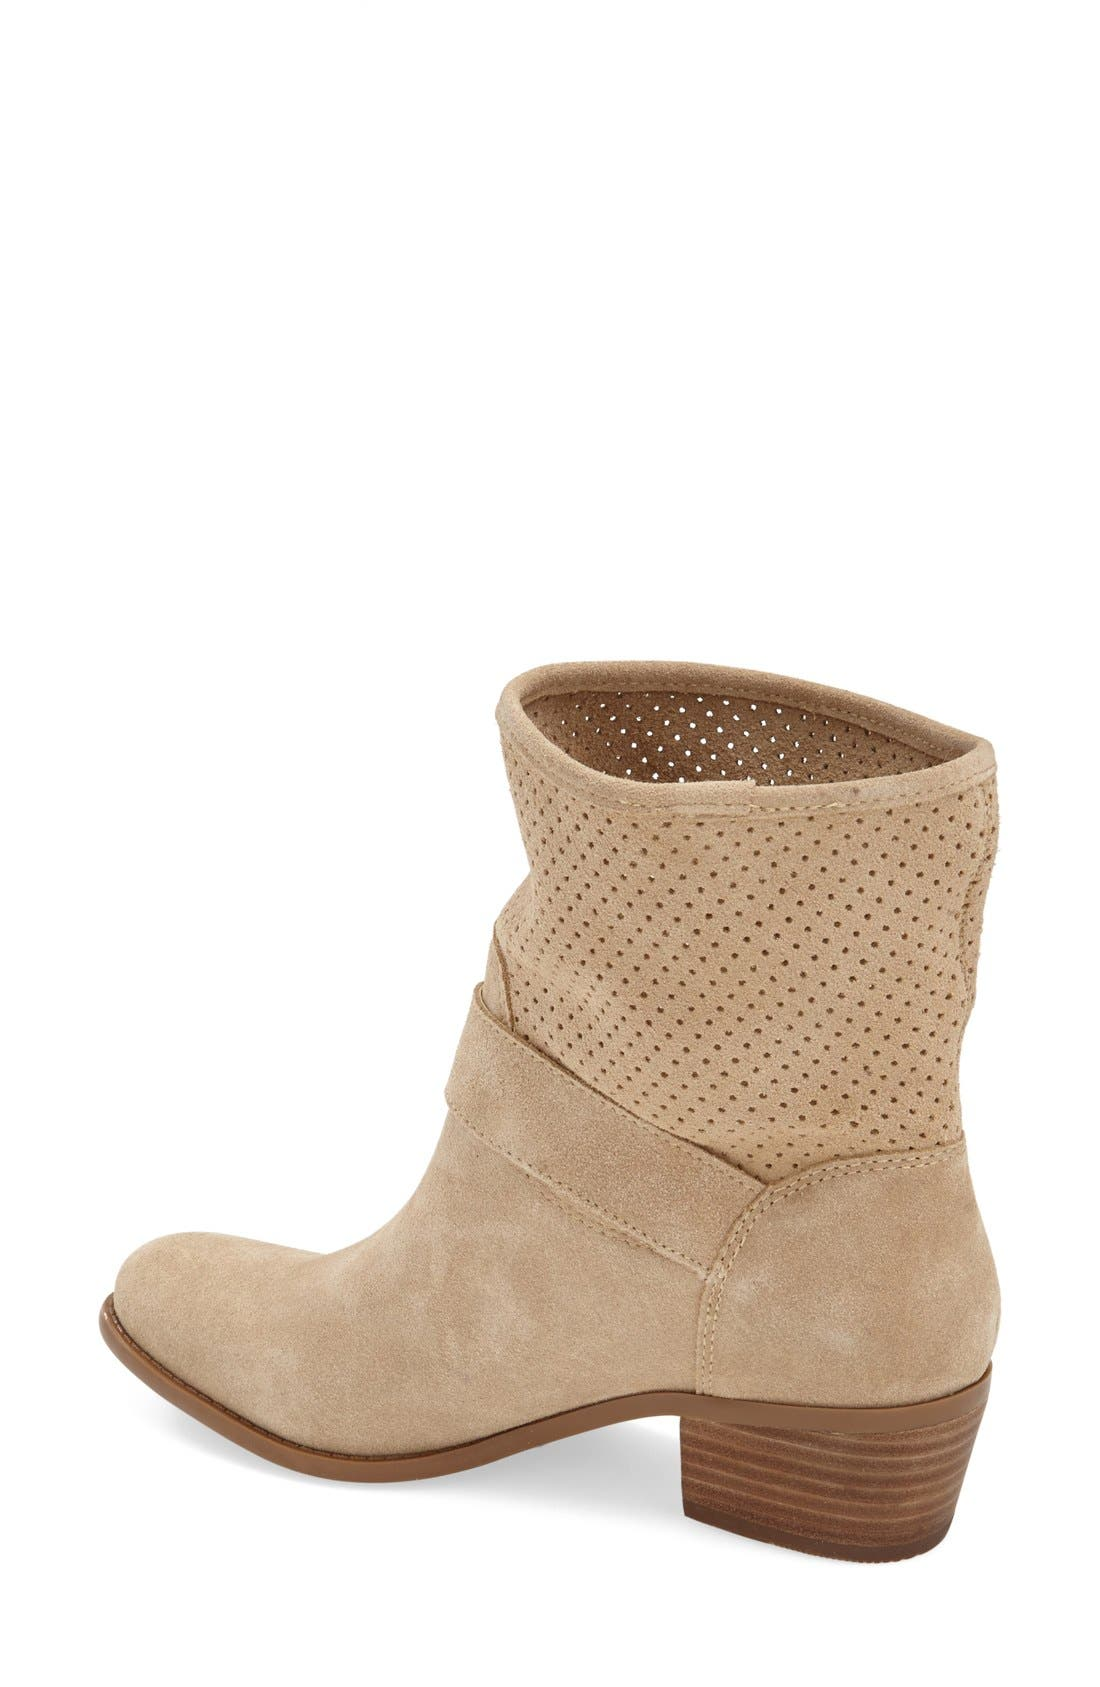 Alternate Image 2  - Sole Society 'Sola' Perforated Suede Western Bootie (Women)